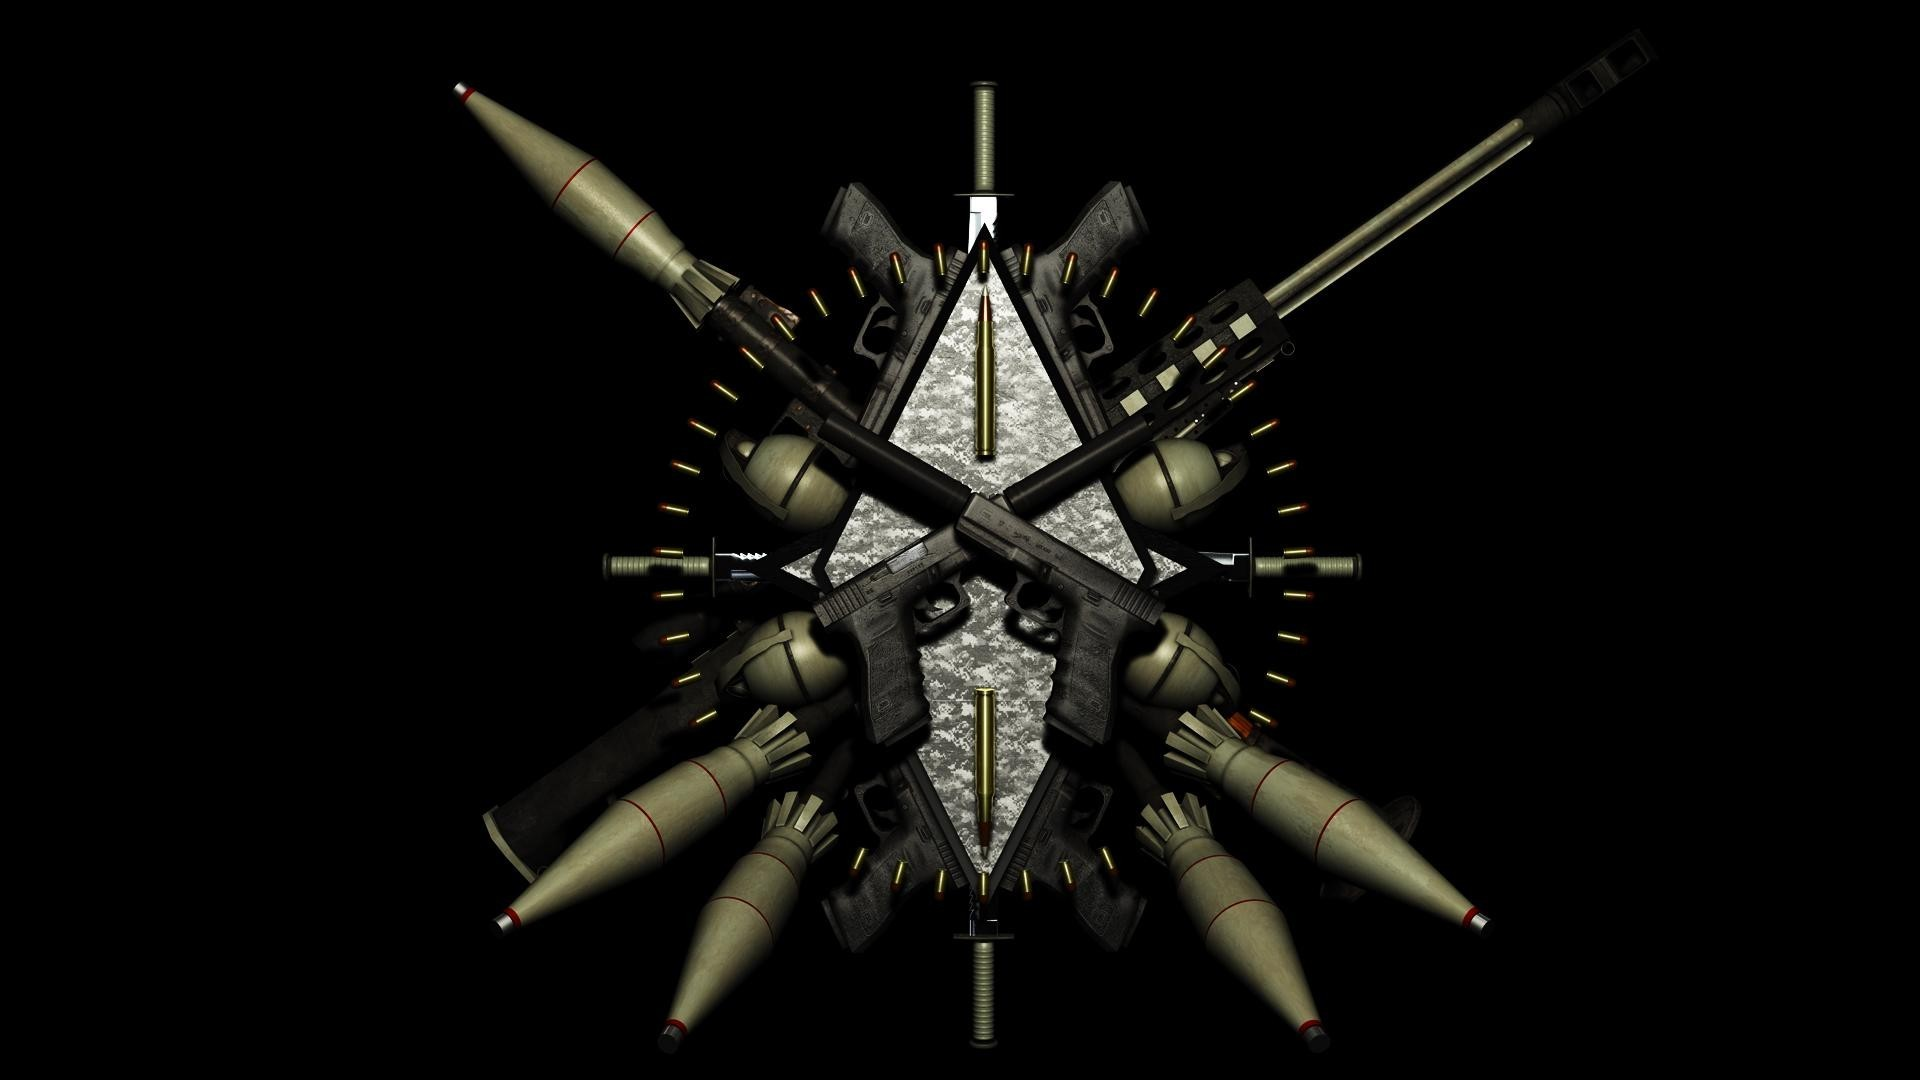 15 Weapon HD Wallpapers  Backgrounds Wallpaper Abyss